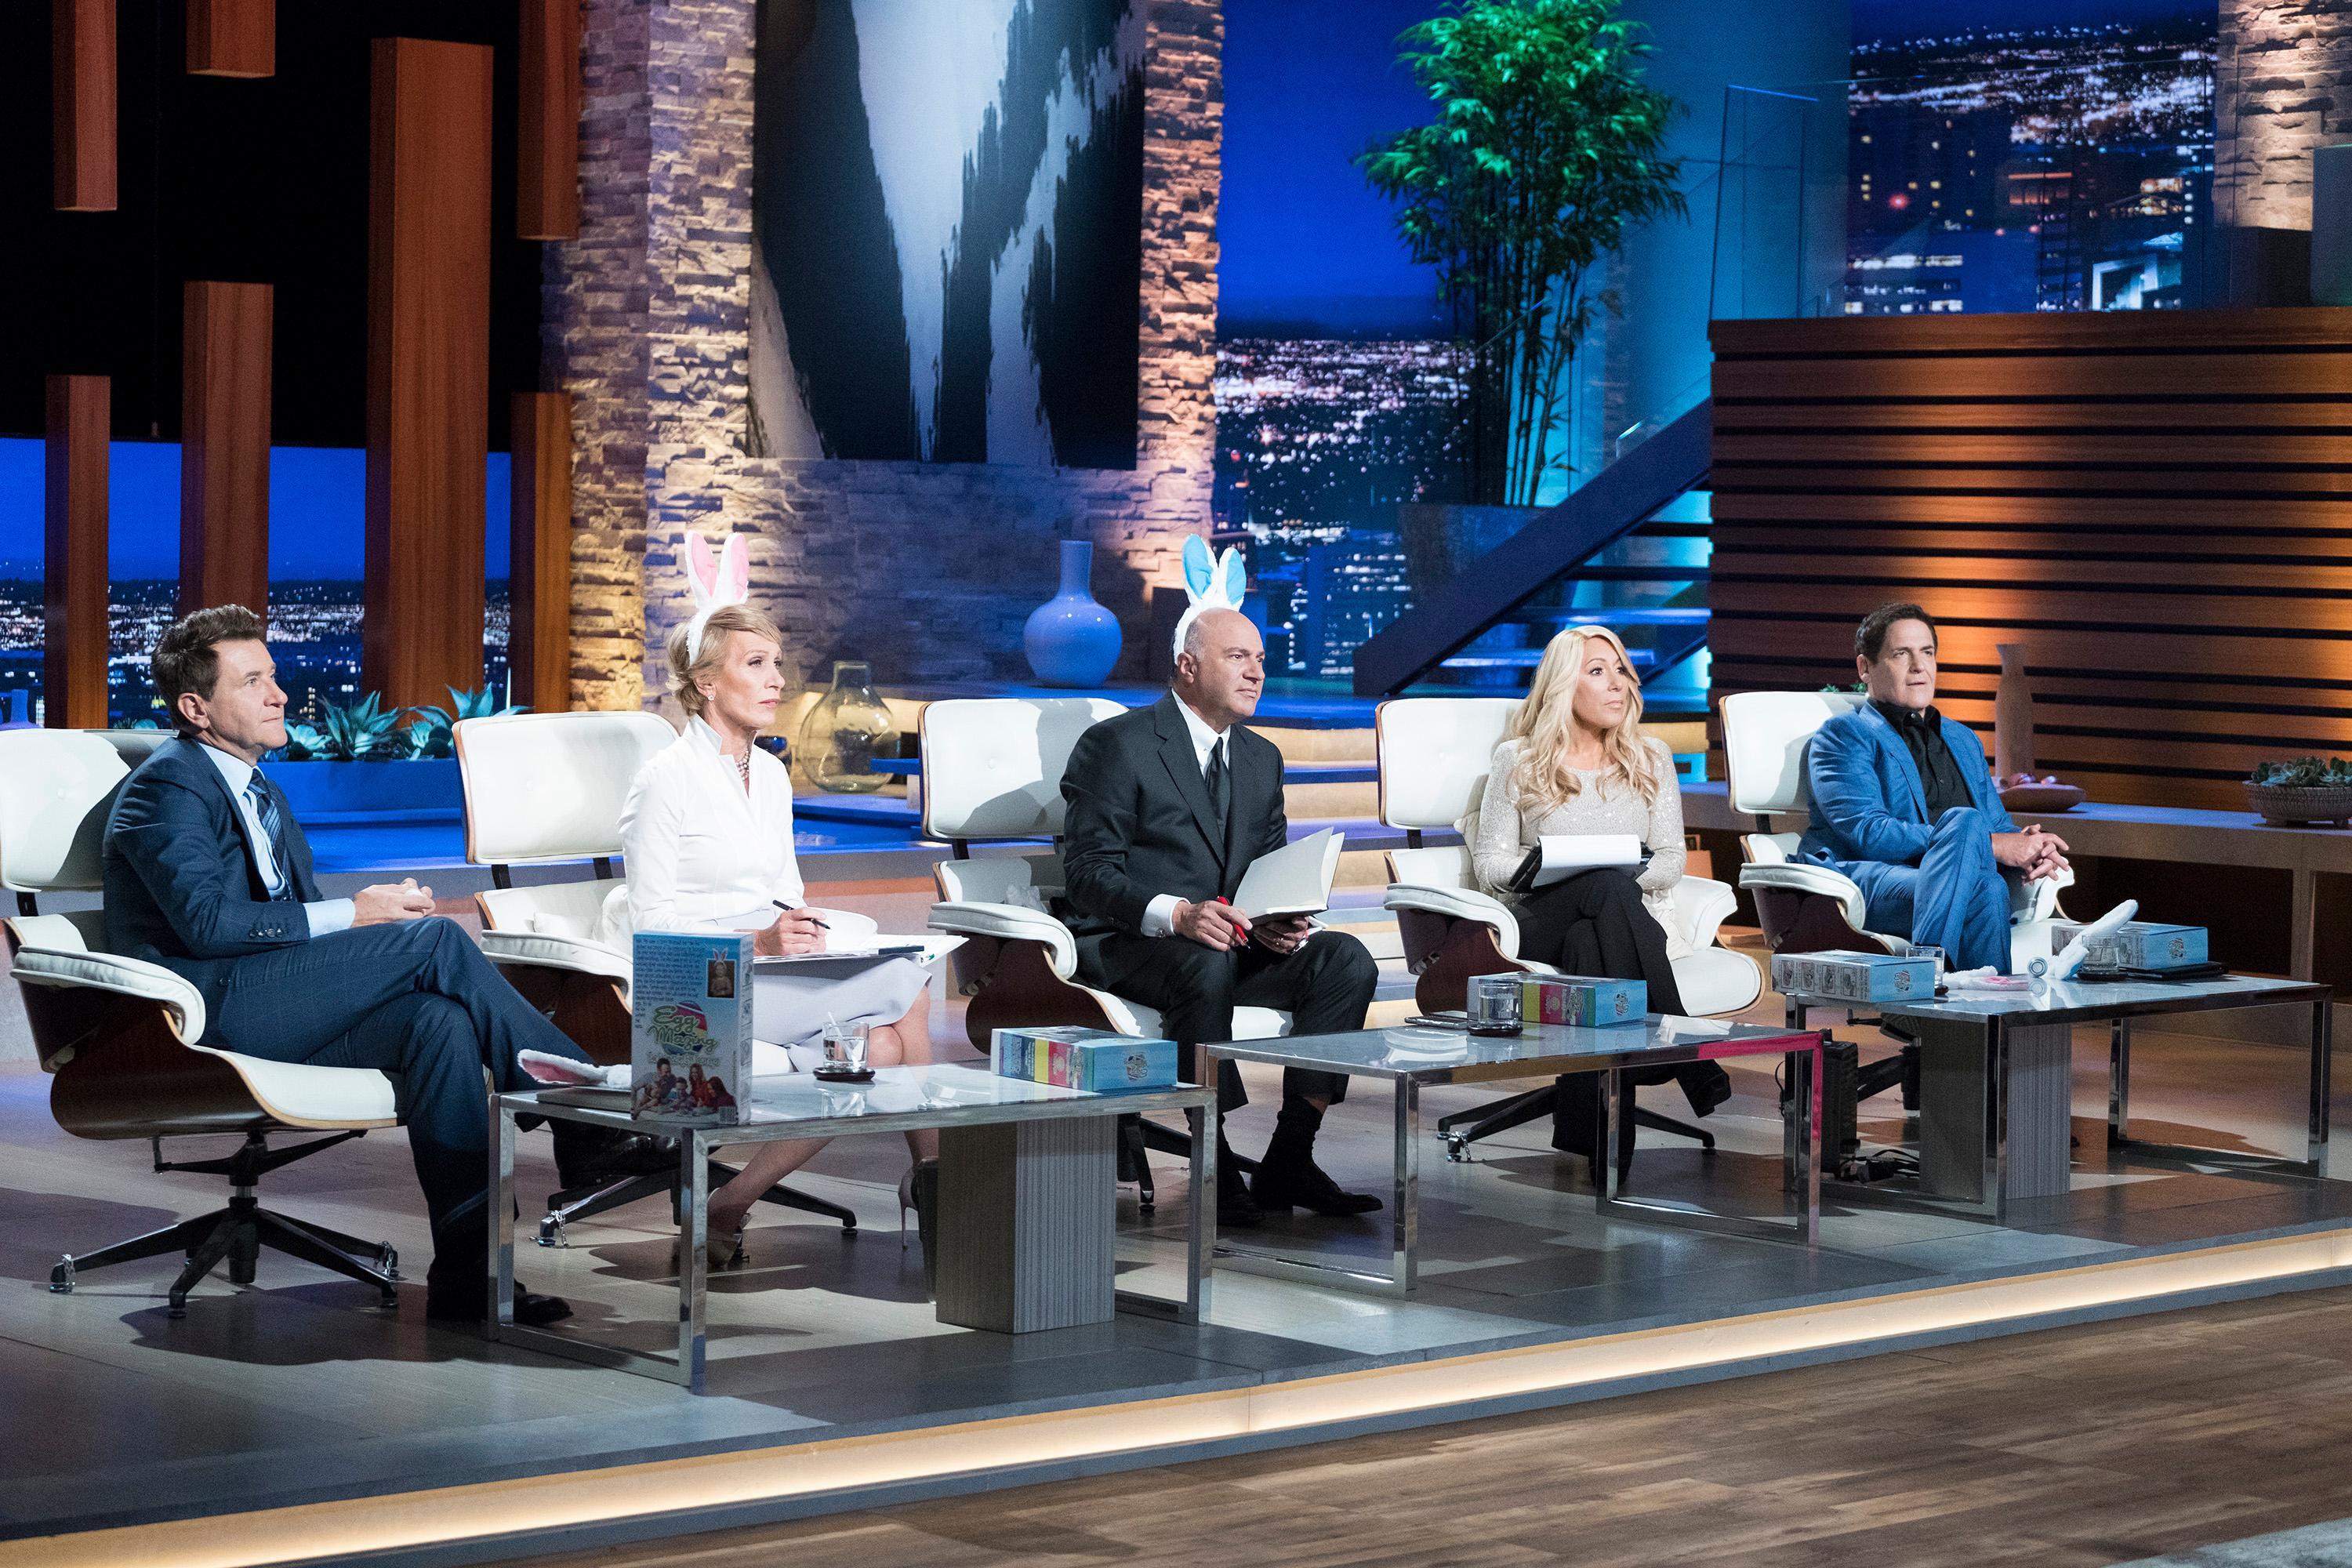 Shark Tank will be rolling into town to host an open casting call on Tuesday June 5 at Studio Xfinity. (Image: ABC/Eddy Chen)